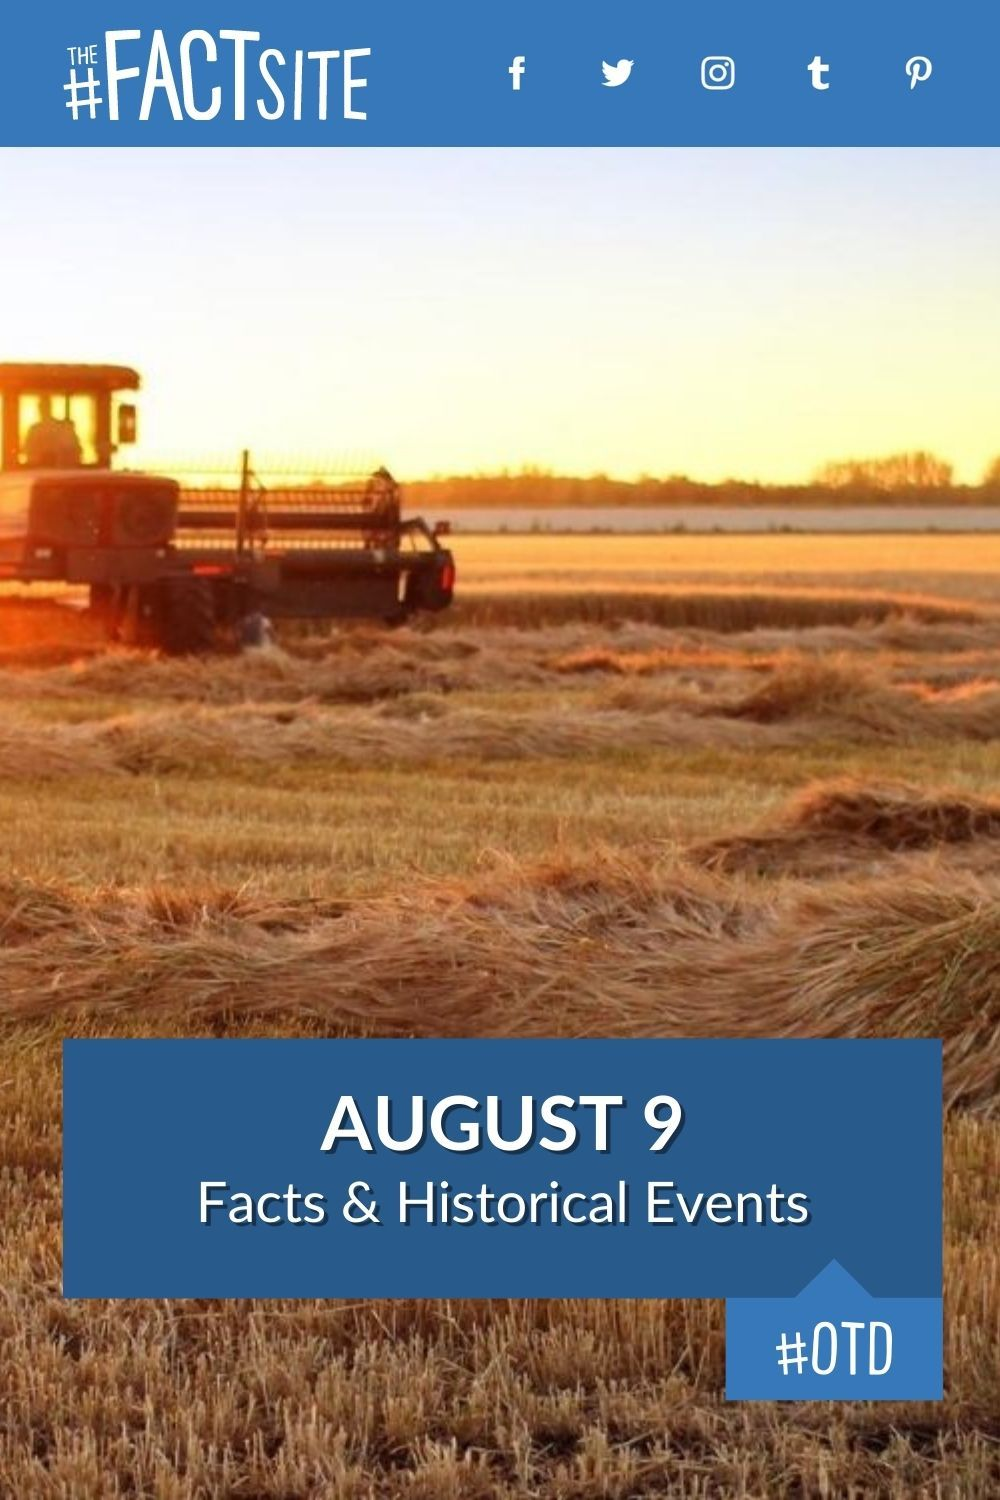 Facts & Historic Events That Happened on August 9